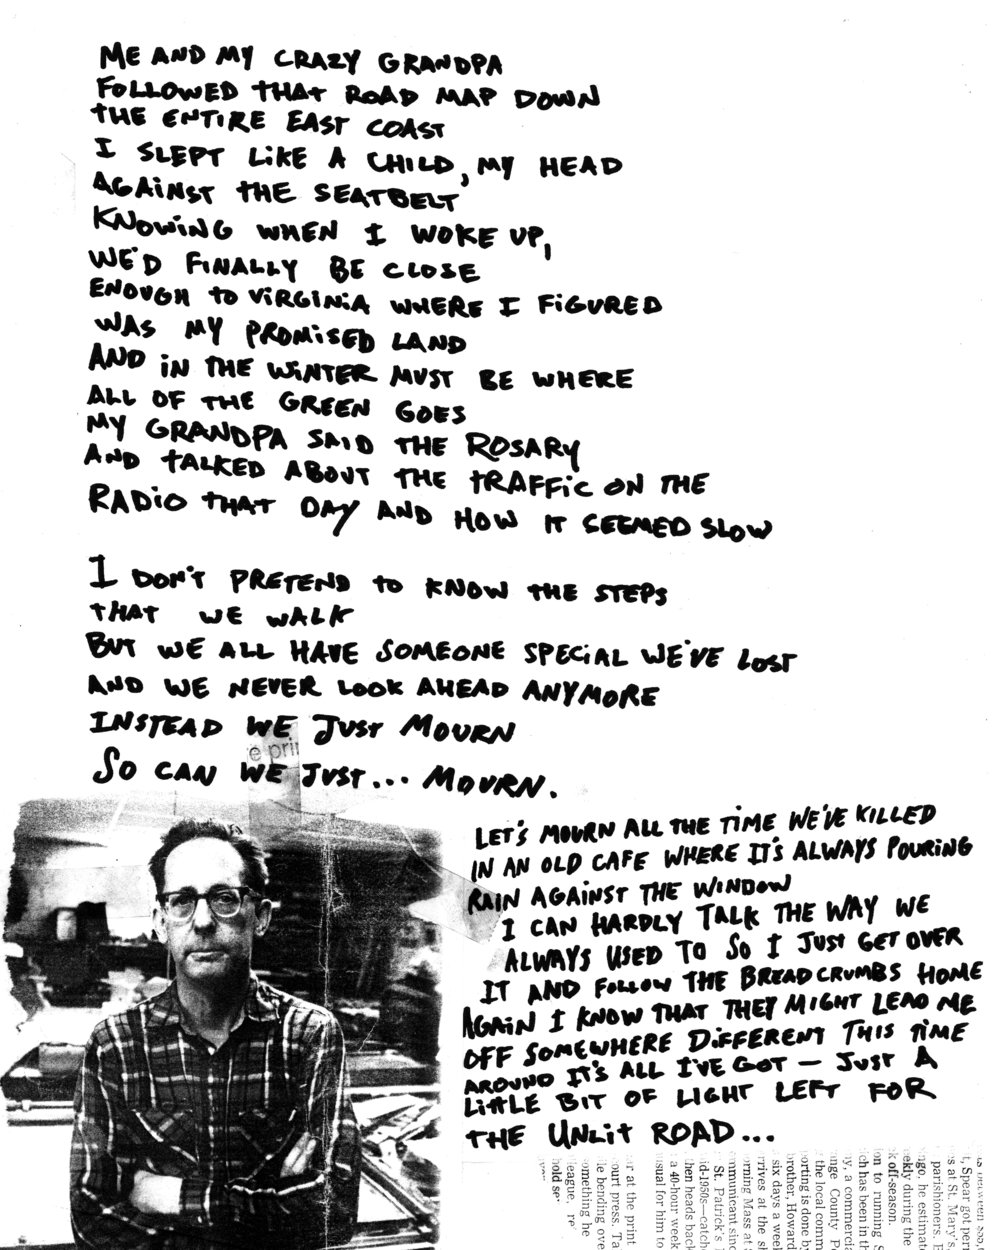 Mourn lyrics for website page 2.jpg